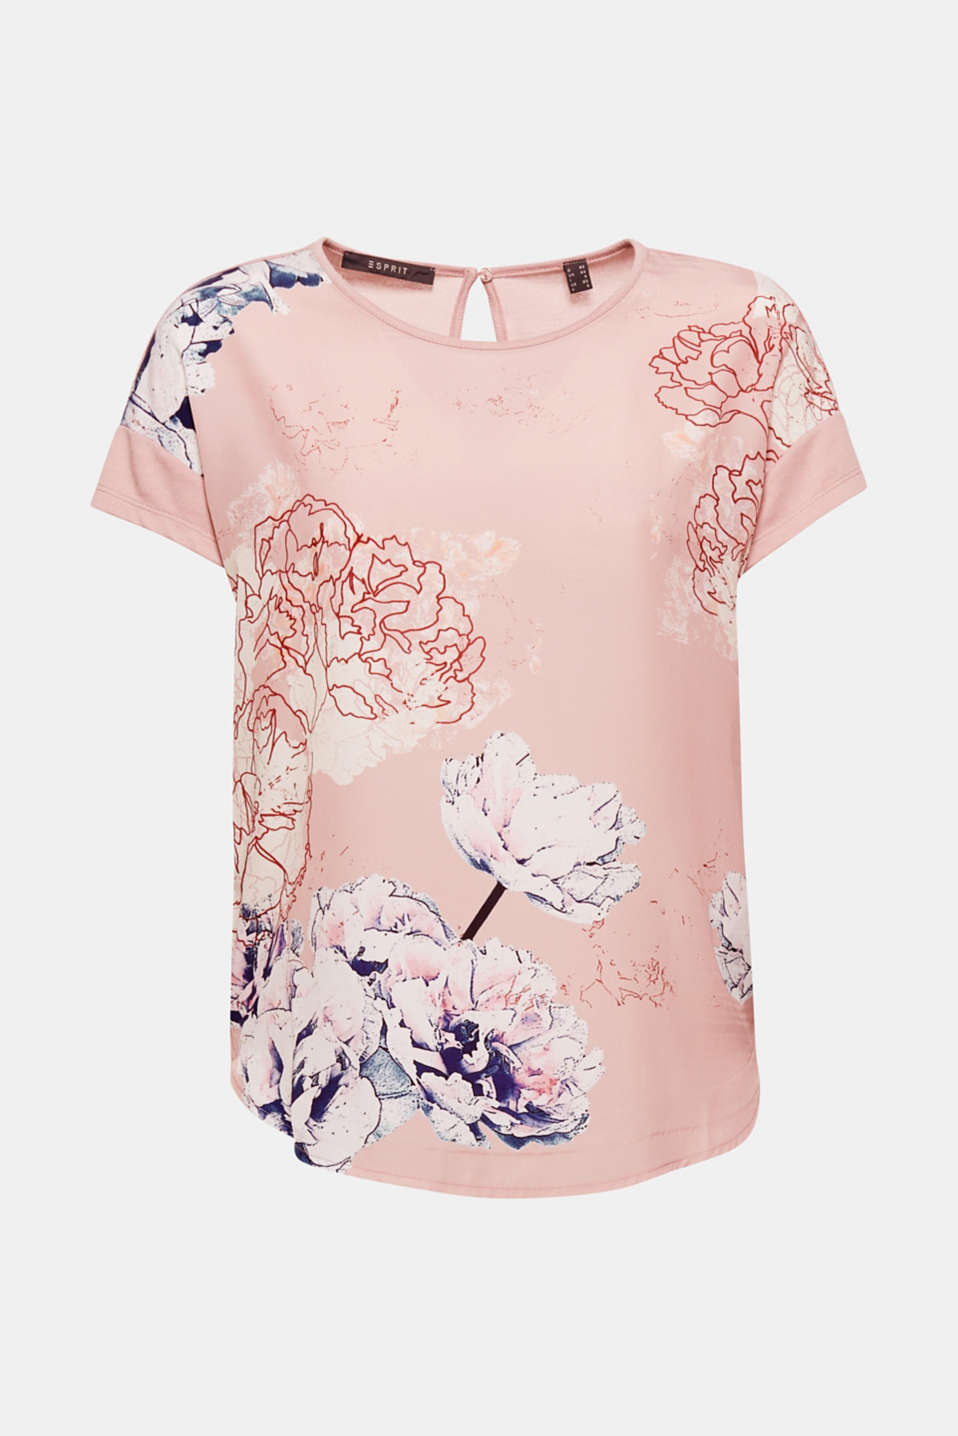 The artistic floral print and soft viscose fabric make this T-shirt absolutely fantastic for work and free time.